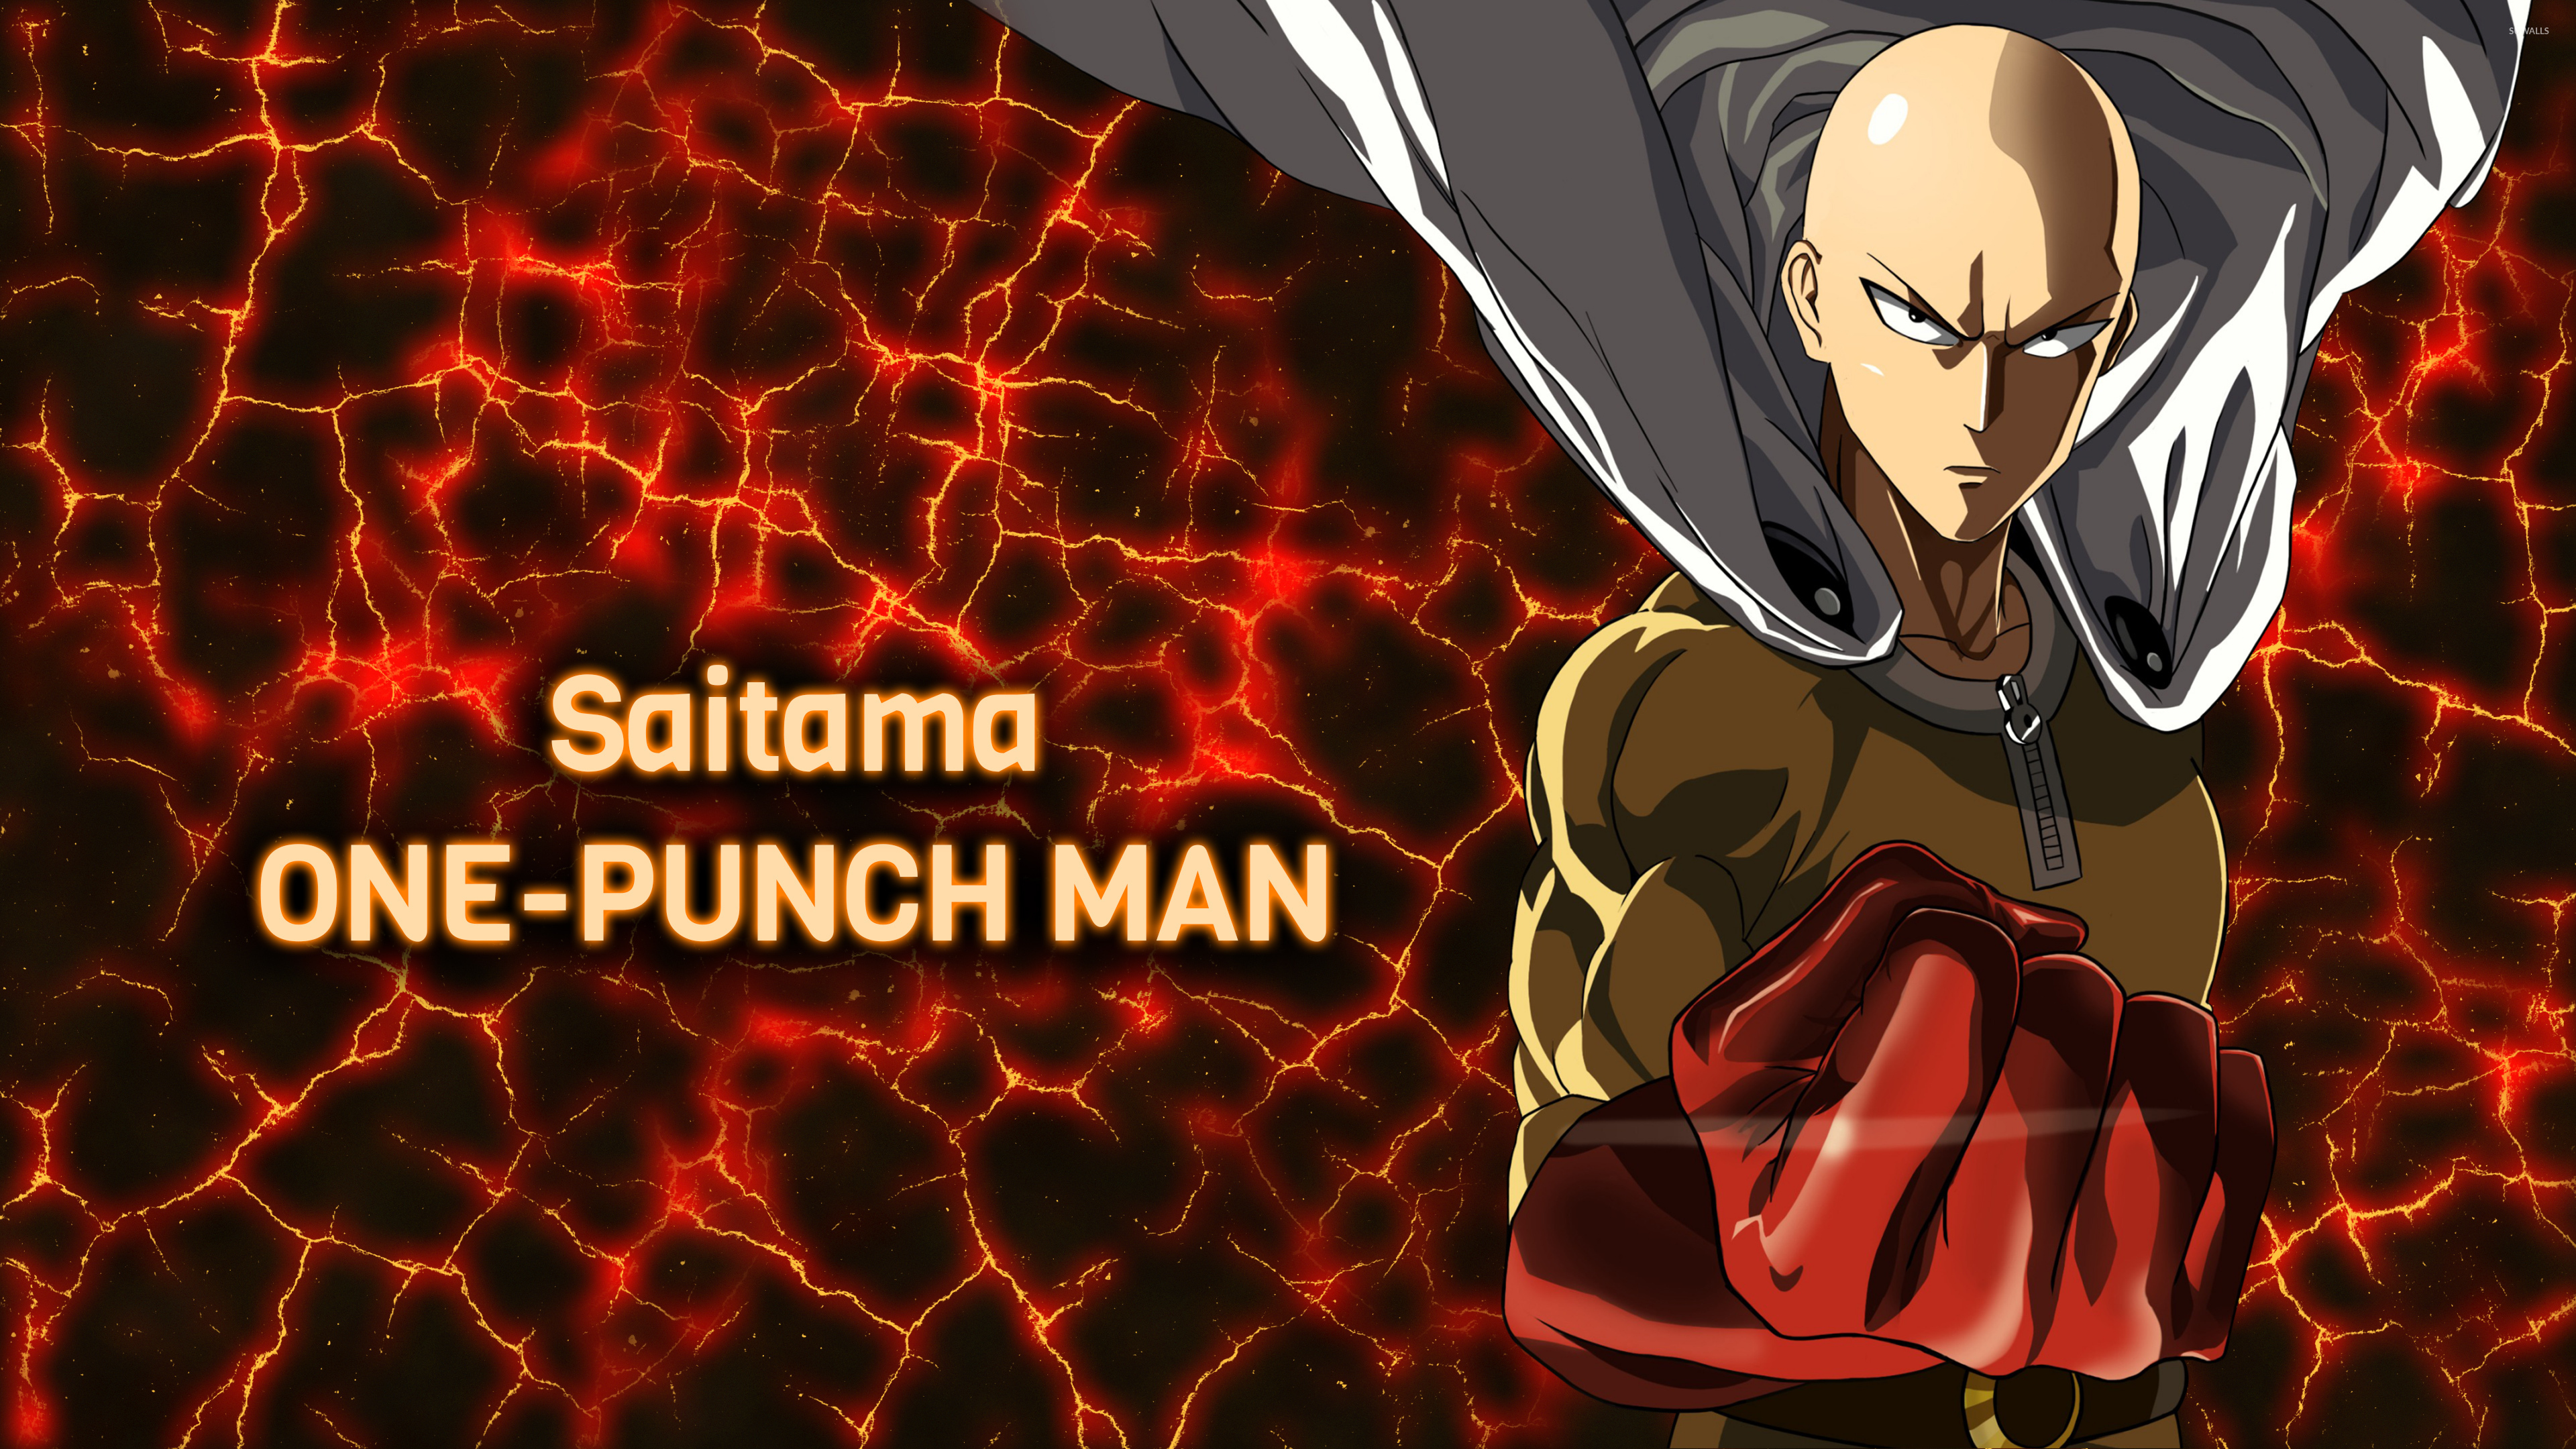 Angry Saitama In One Punch Man Wallpaper Anime Wallpapers 52641